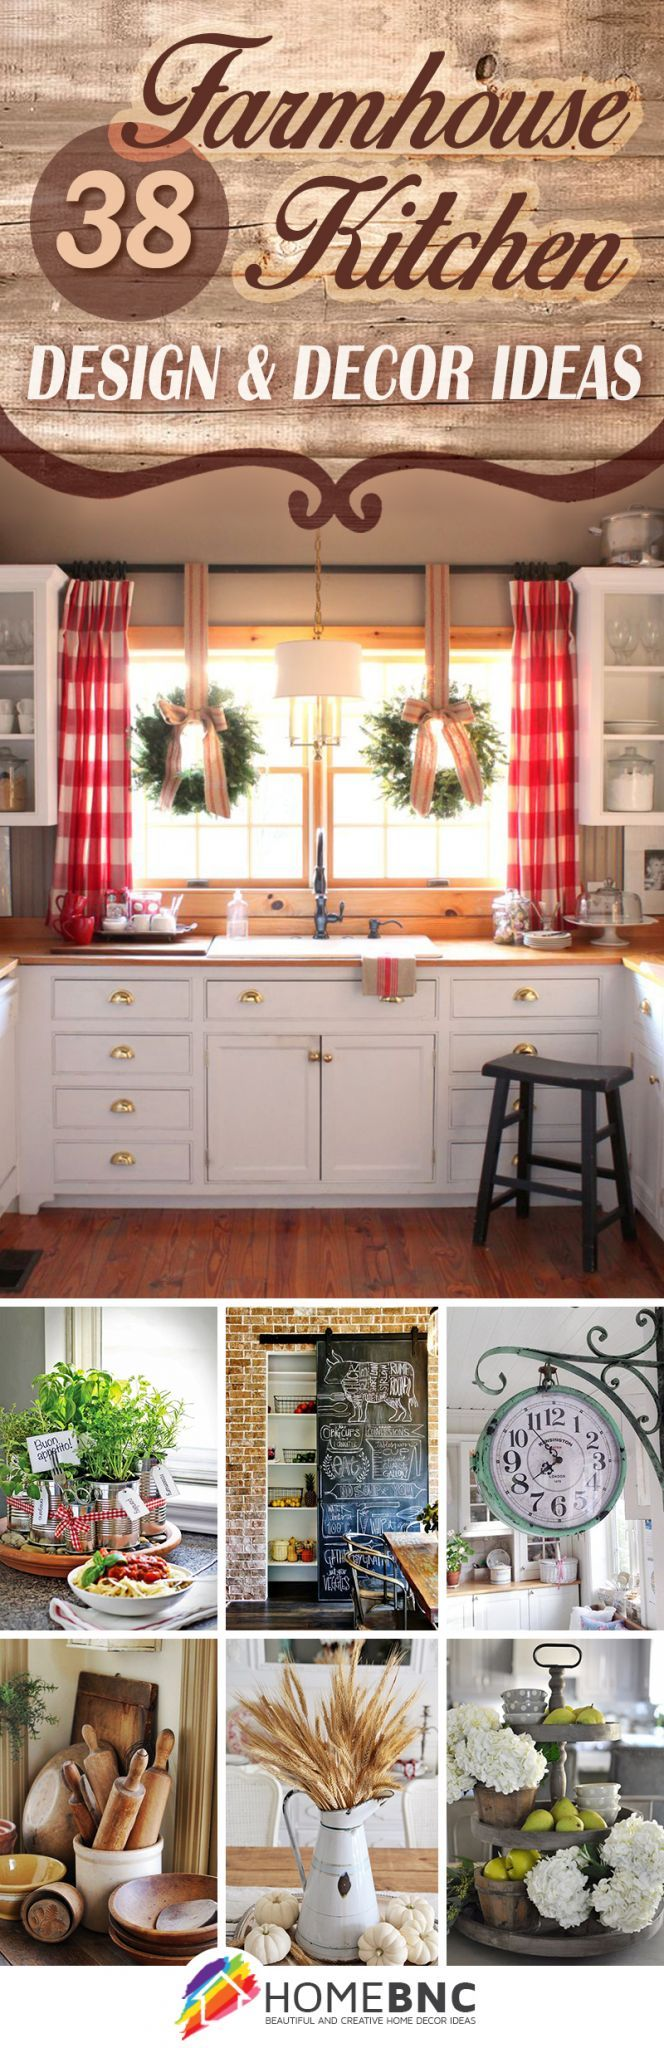 best farmhouse kitchens images by adriene edwards on pinterest